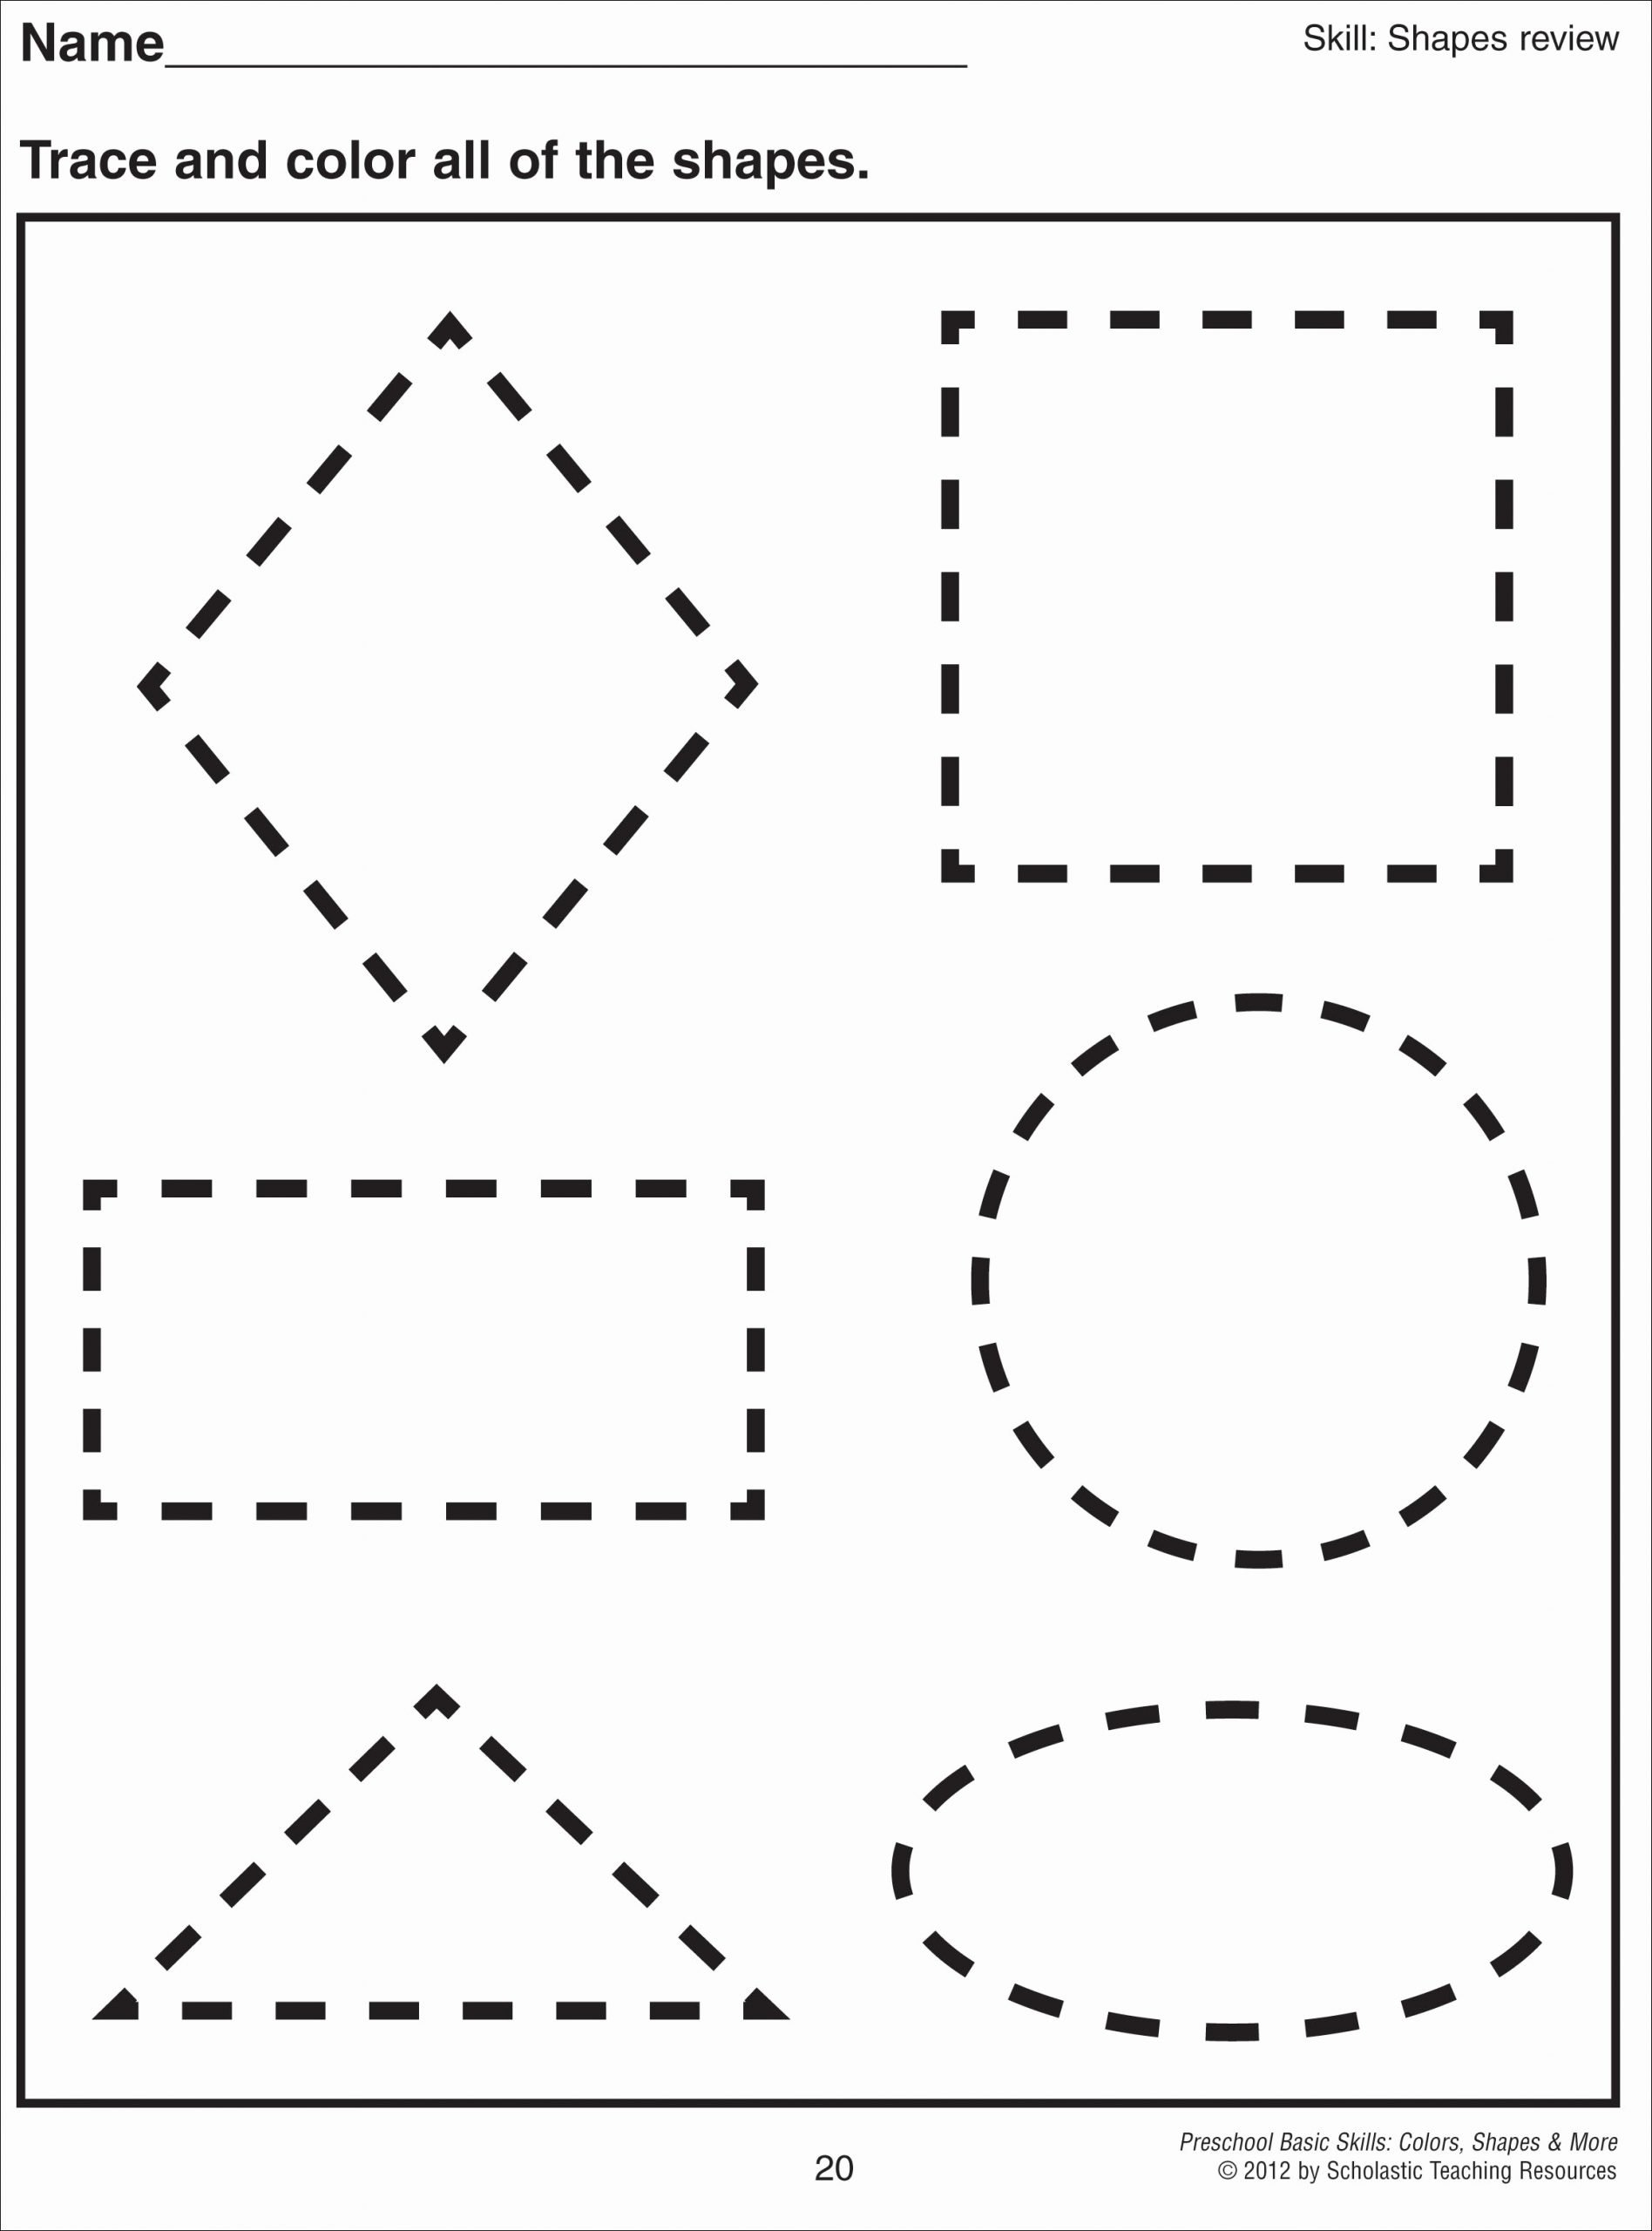 Shape Review Worksheets for Preschoolers Fresh Math Worksheet 1000 Images About Preschool Shapes On